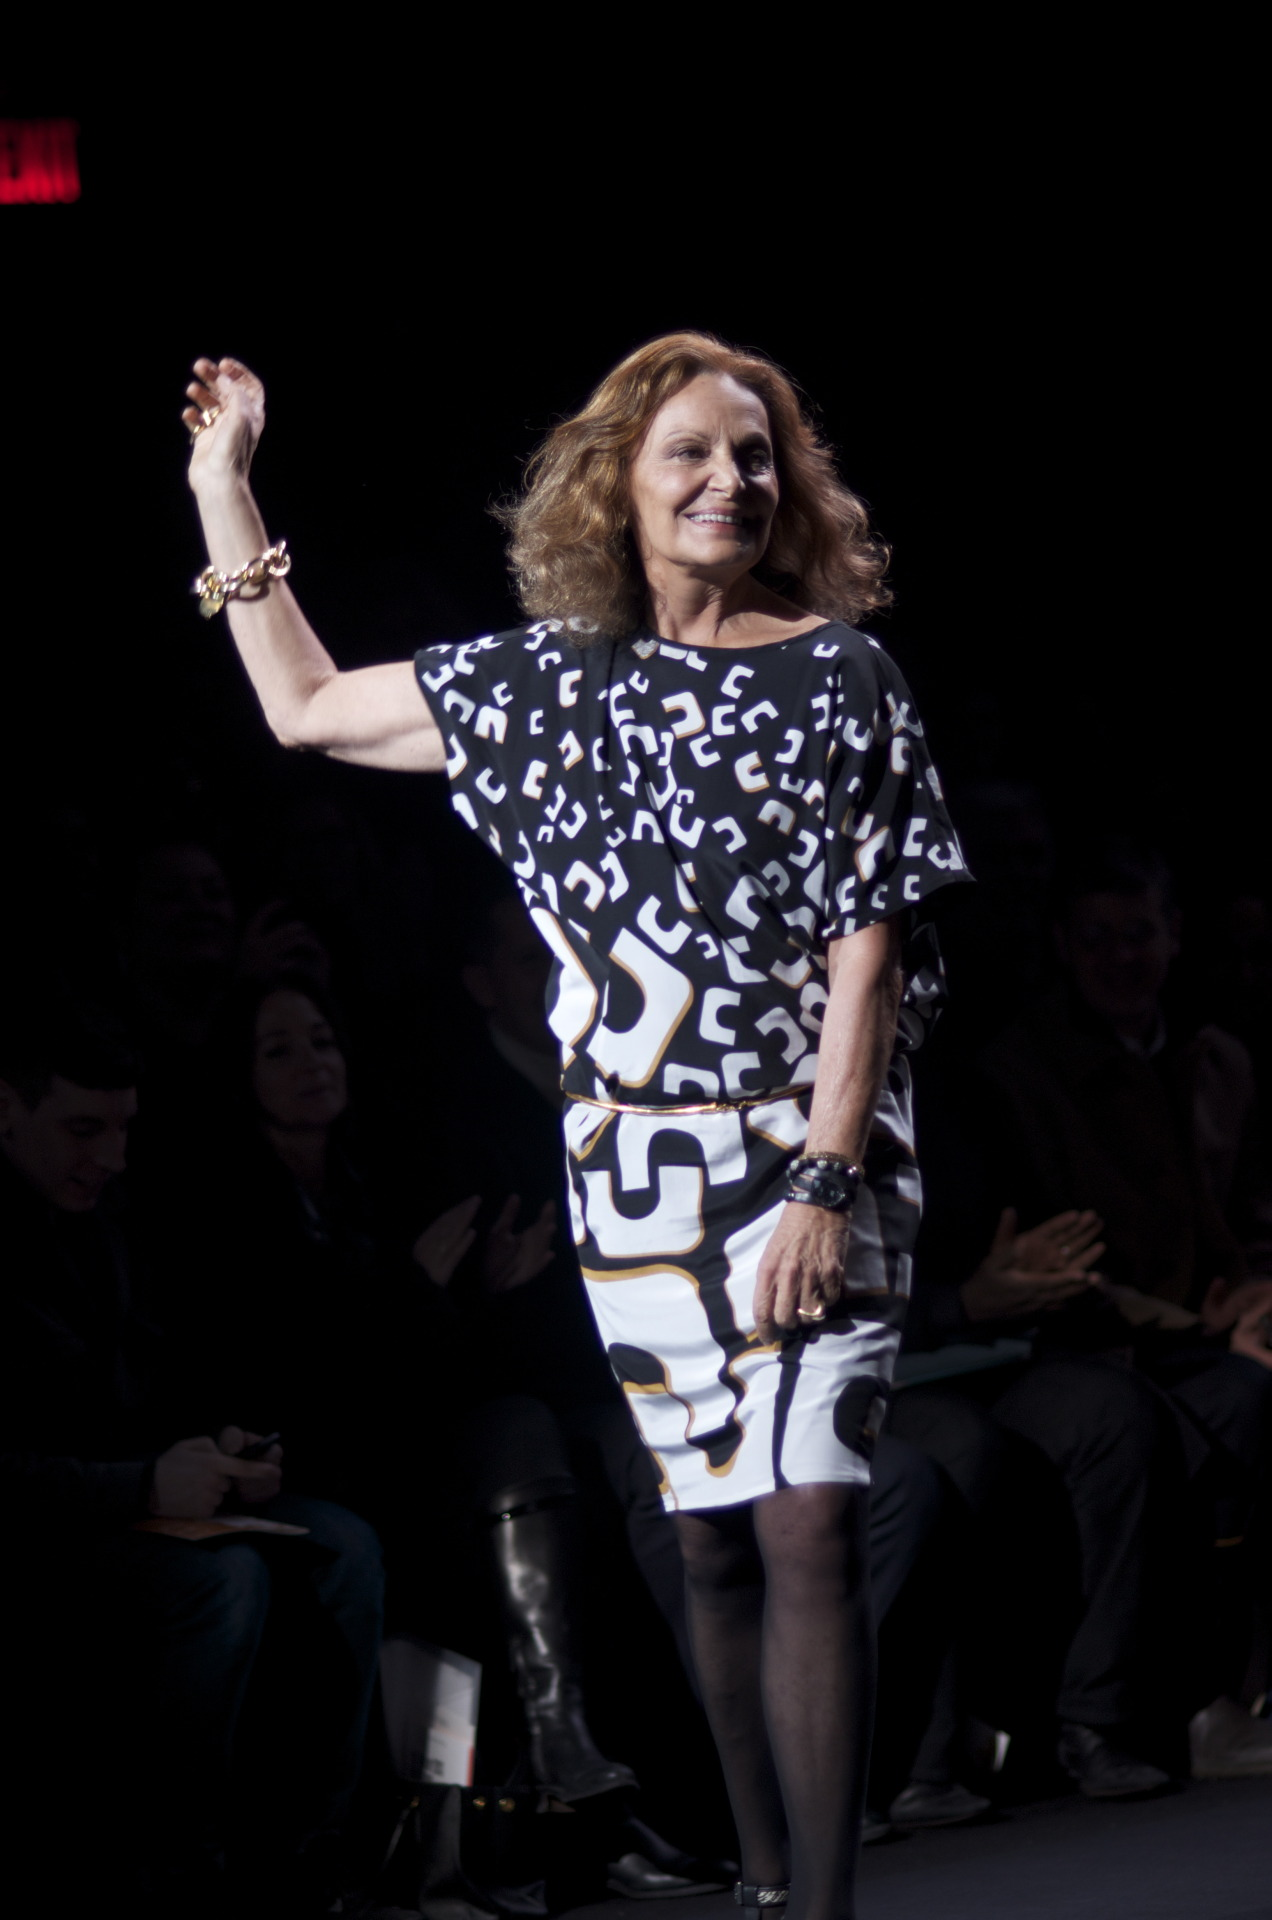 Diane von Furstenberg taking her always, much deserved final walk after the Fall/Winter 2013 show. Lauren Kristin for Fashionisto Diaries.